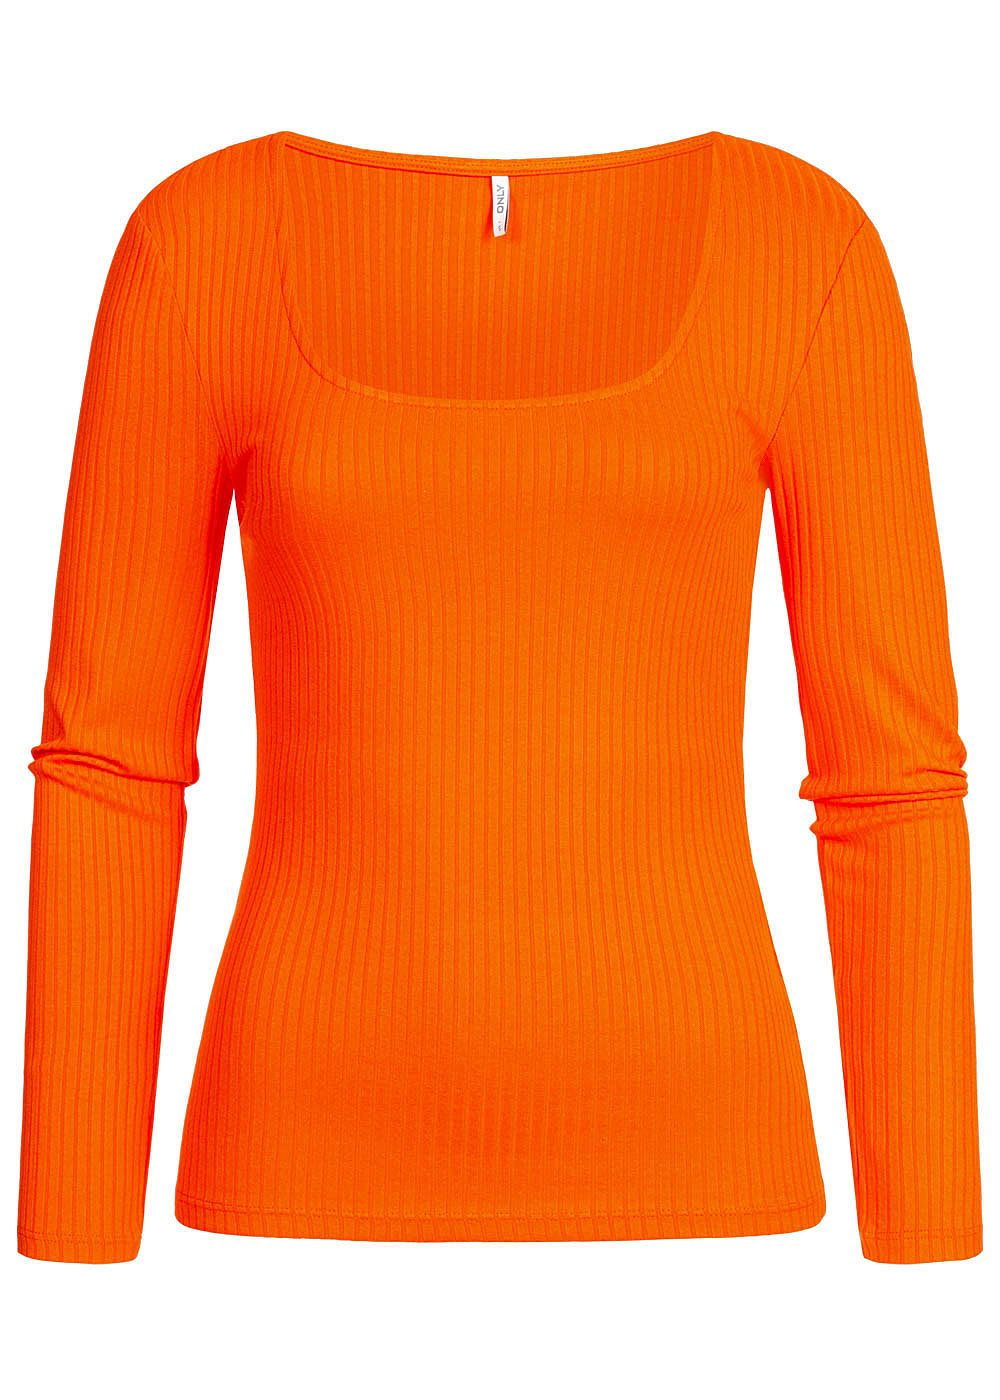 ONLY Damen Ripp Longsleeve Pullover orange - Art.-Nr.: 19093864-L-OR